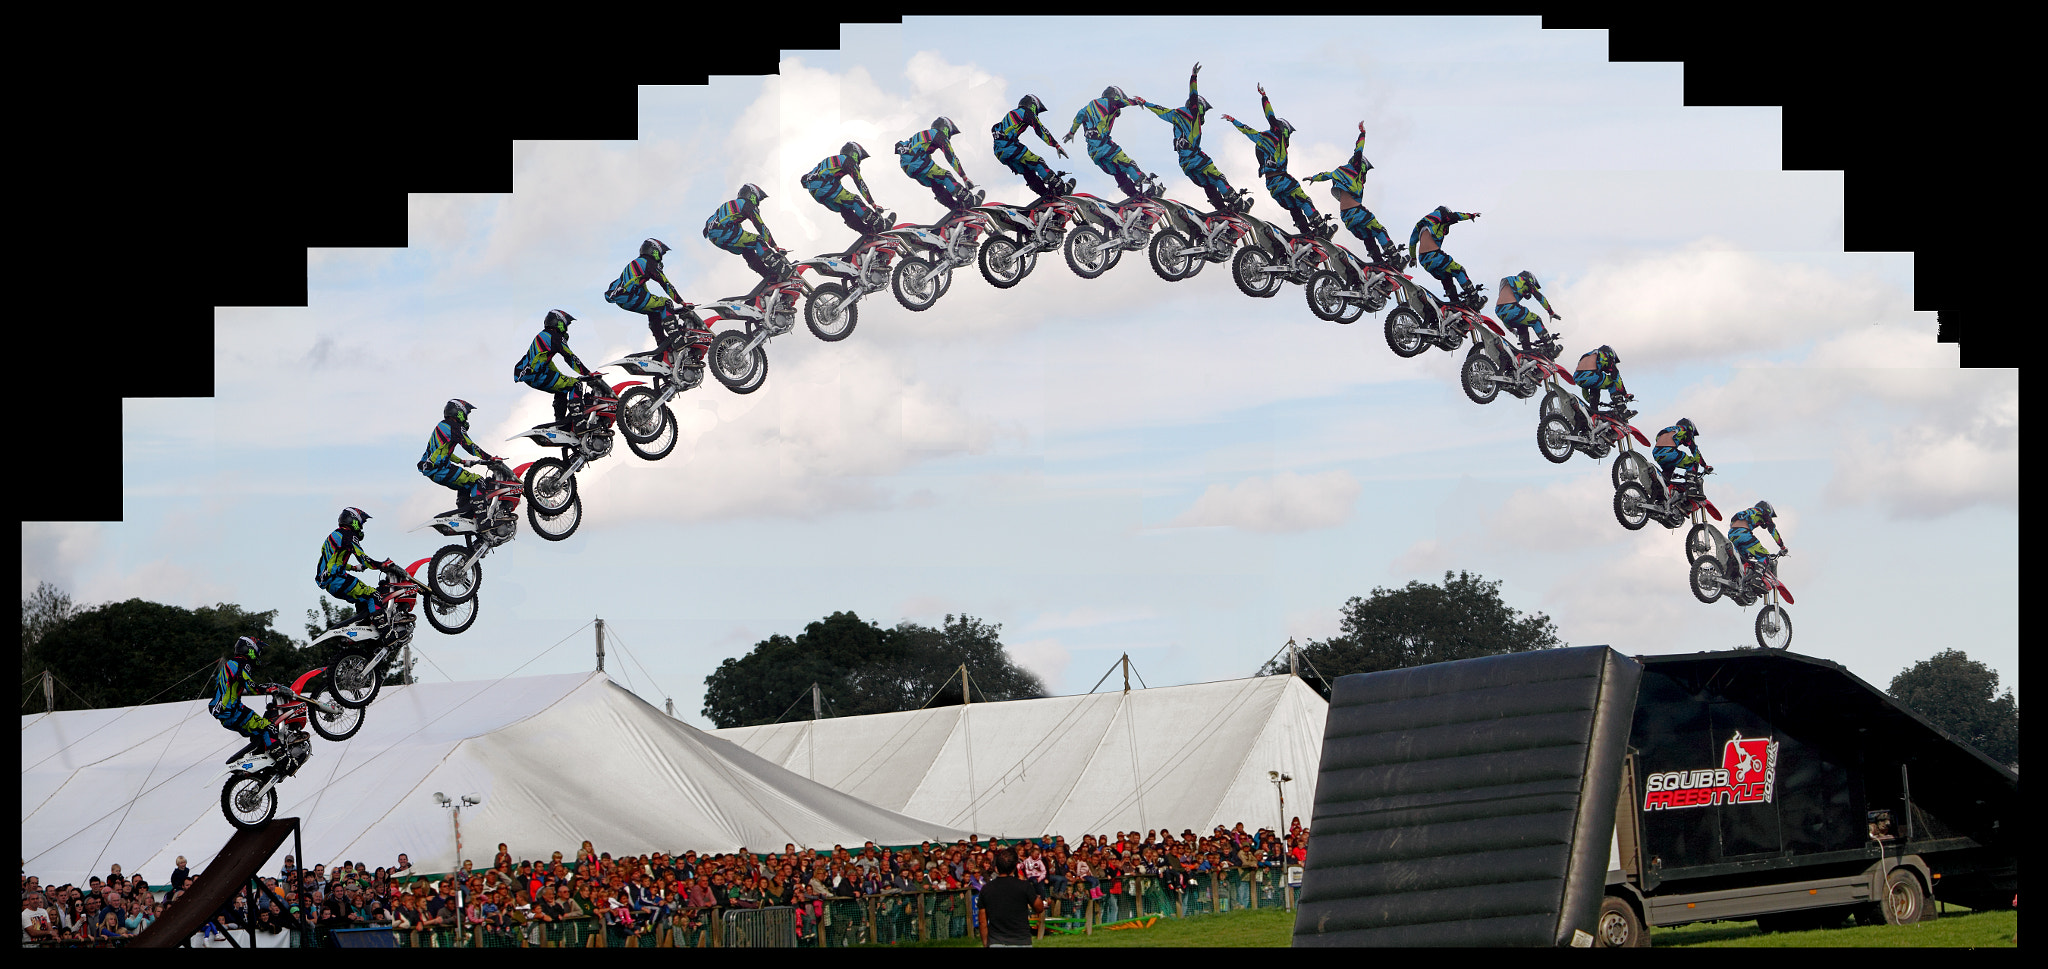 Photograph Stunt rider by Gary Dixon on 500px